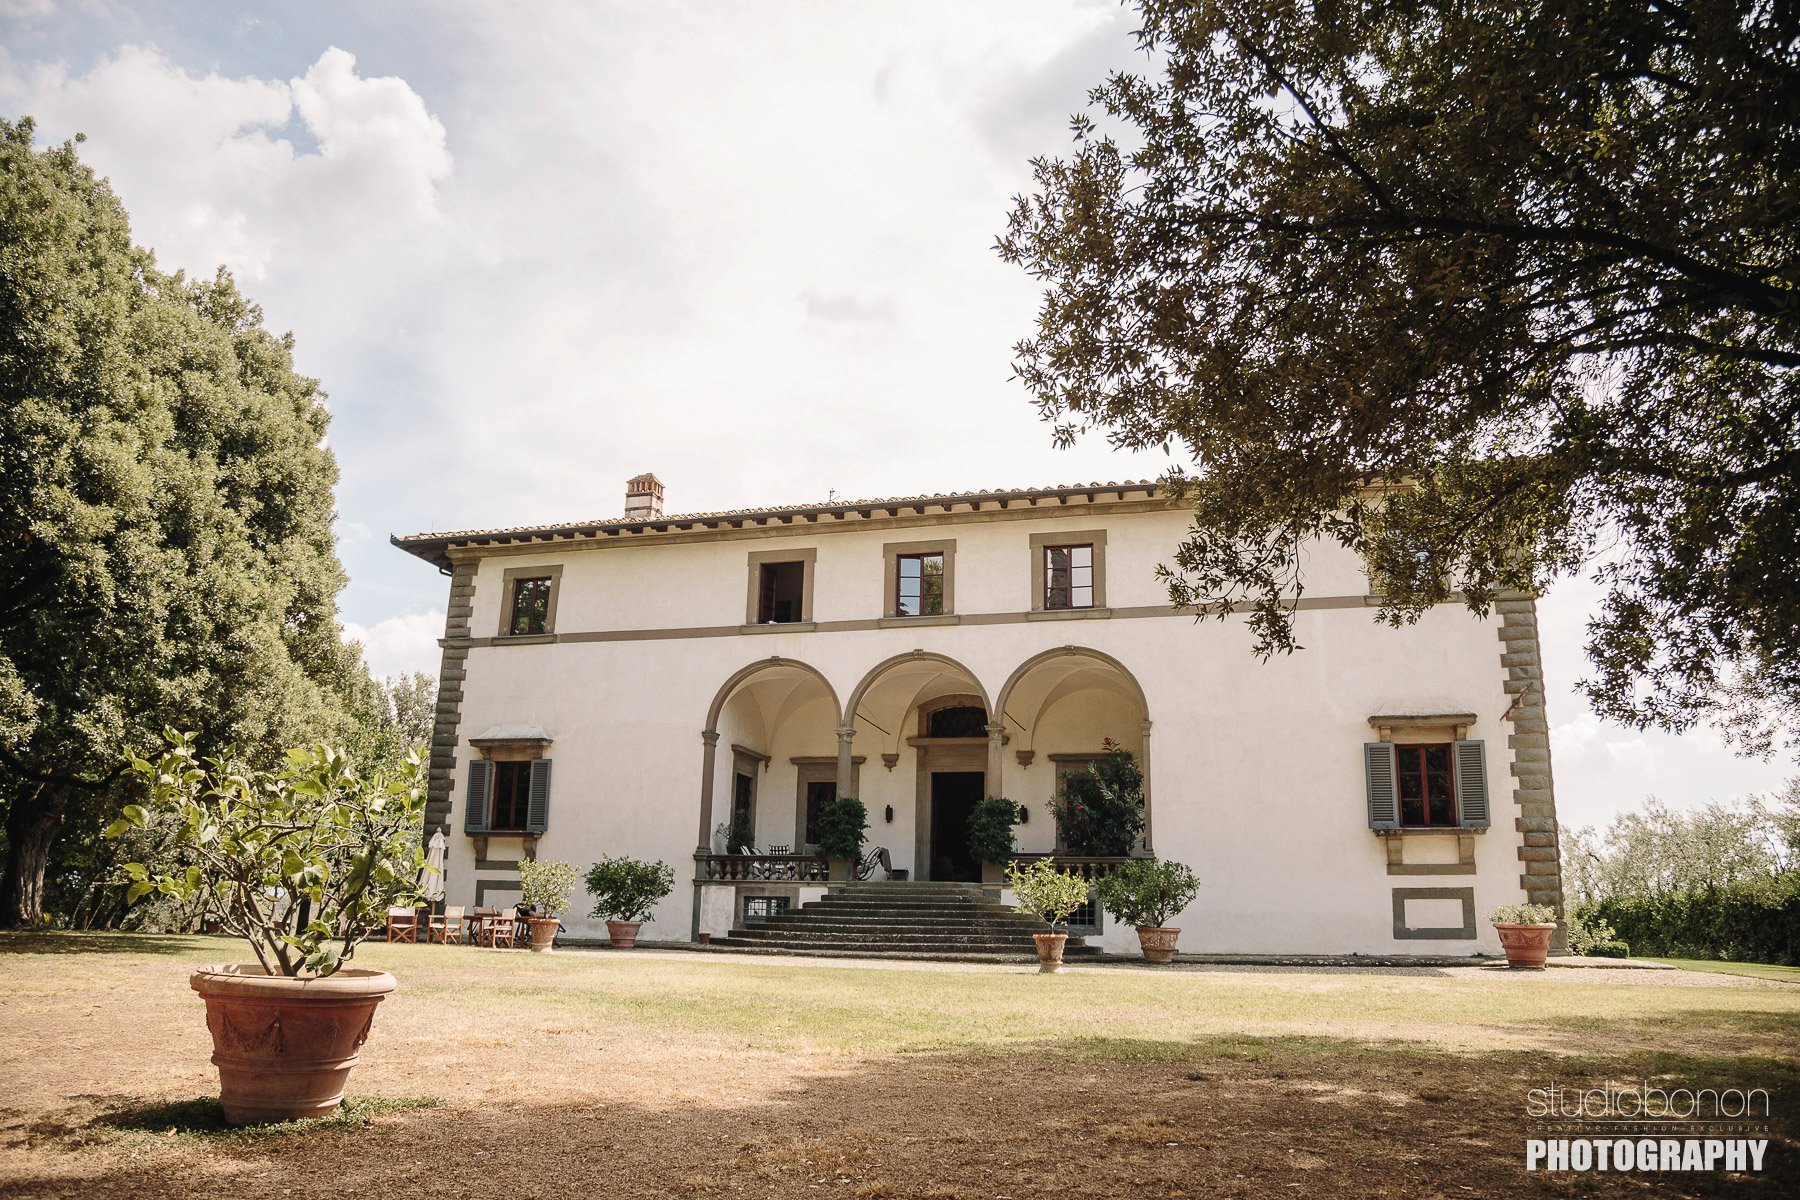 Villa Pisignano a beautiful Villa into the Tuscany countryside. A perfect venue for destination weddings